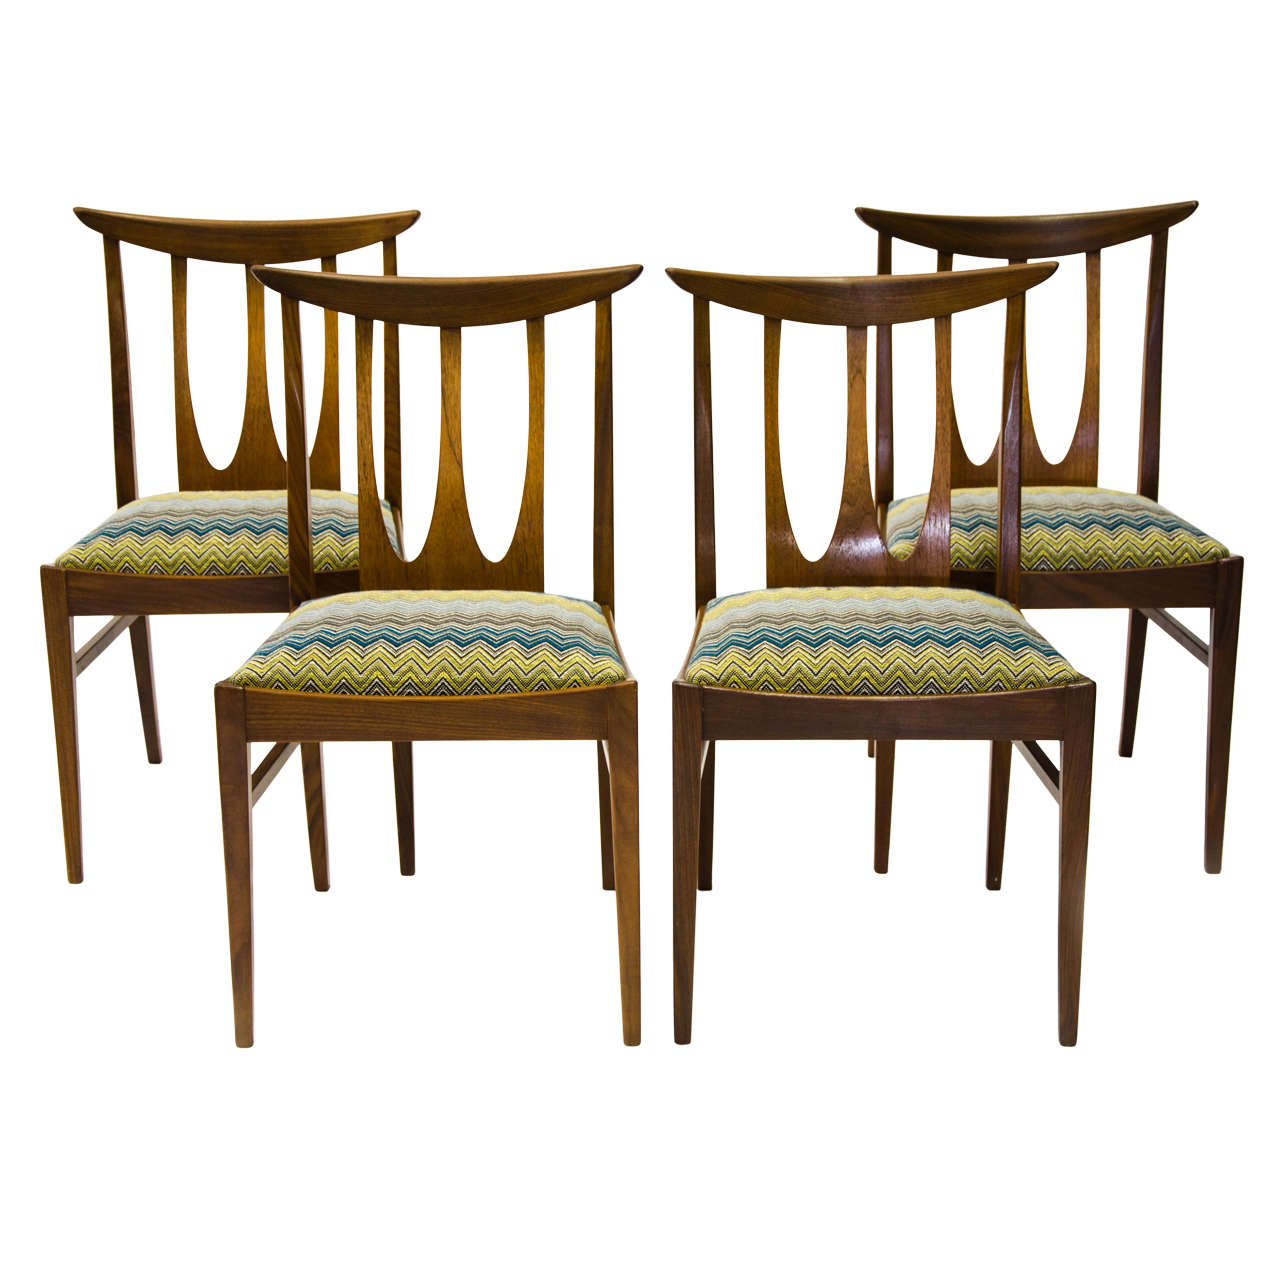 British 1960s set of g plan dining chairs at 1stdibs for G plan dining room chairs